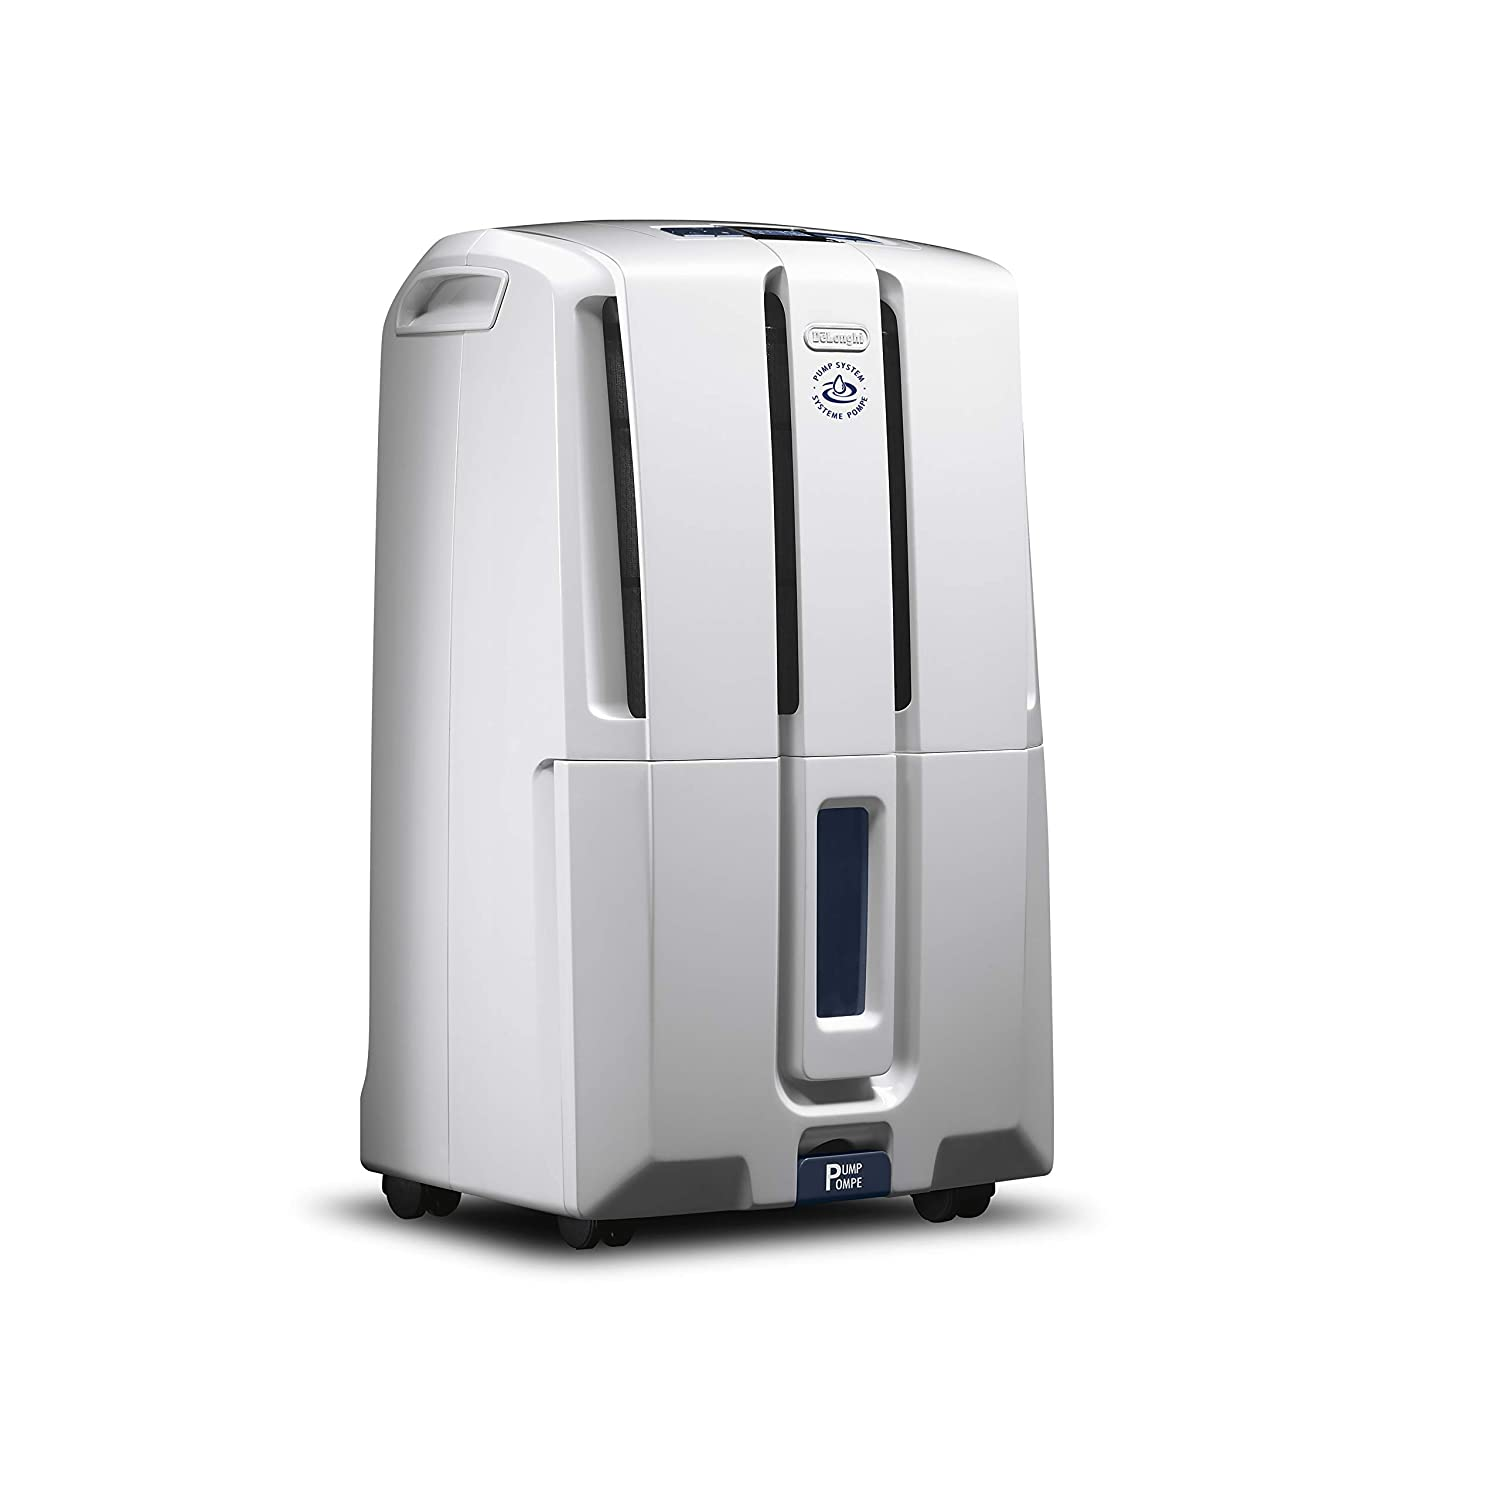 DeLonghi Energy Star 2.0 Dehumidifier, 50 Pint, White